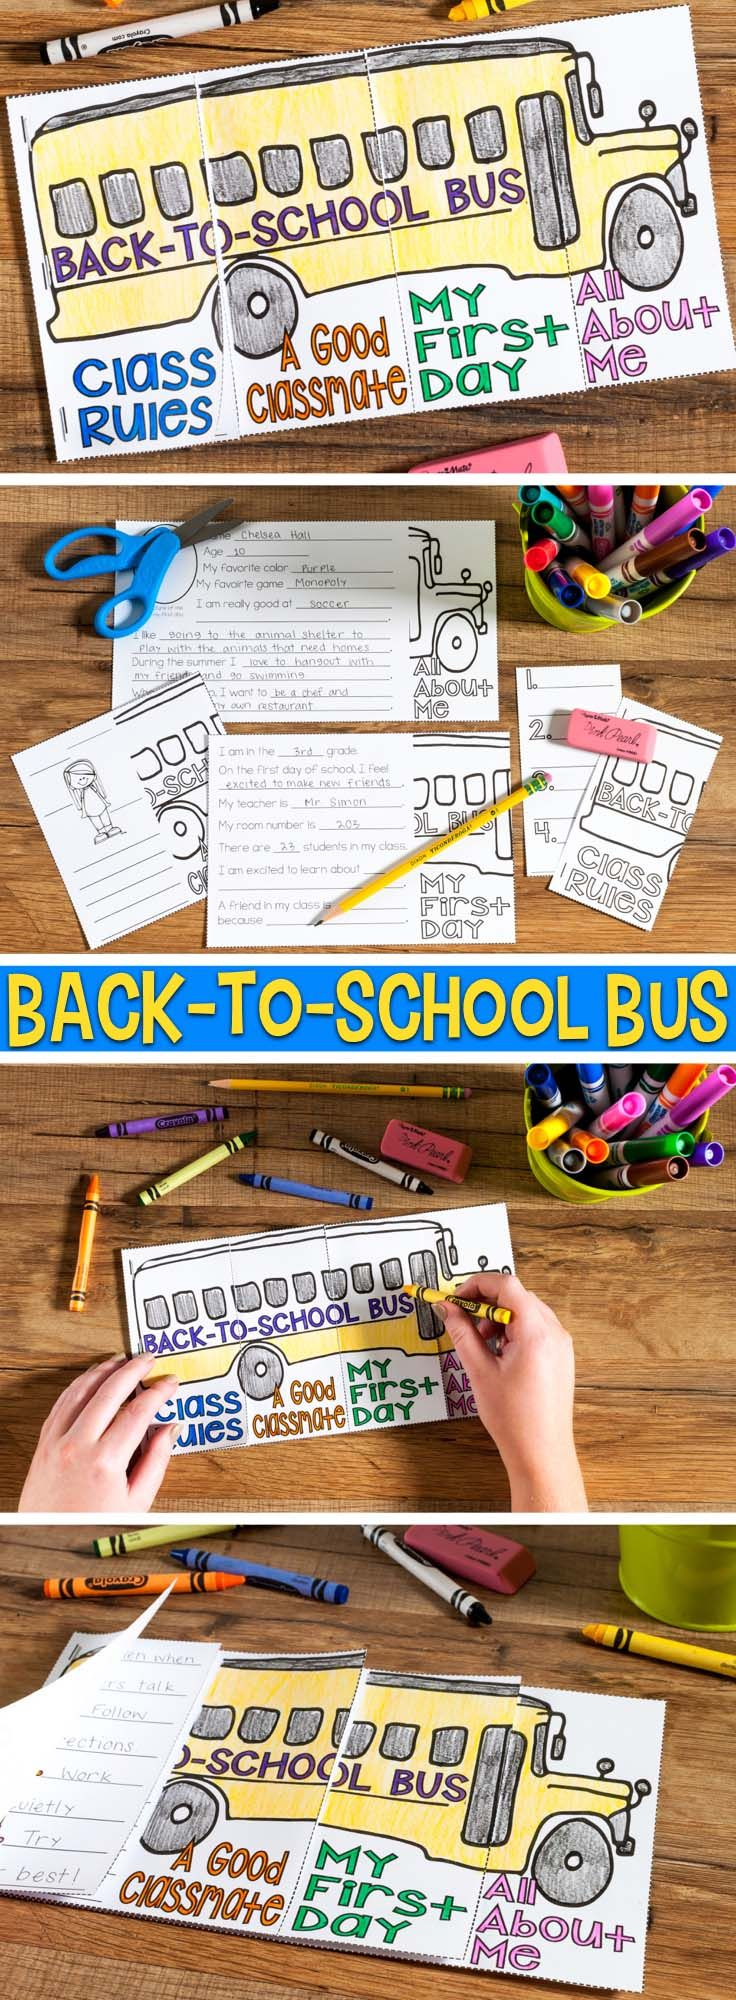 Back-to-School Bus Craftivity Flap Book is a fun craft to do during the first couple days of school. Students tell about themselves, their reactions to their first day of school, what makes a good classmate, and class rules. Students fill out each section, staple them together and color the bus. It makes a great beginning of the year bulletin board.